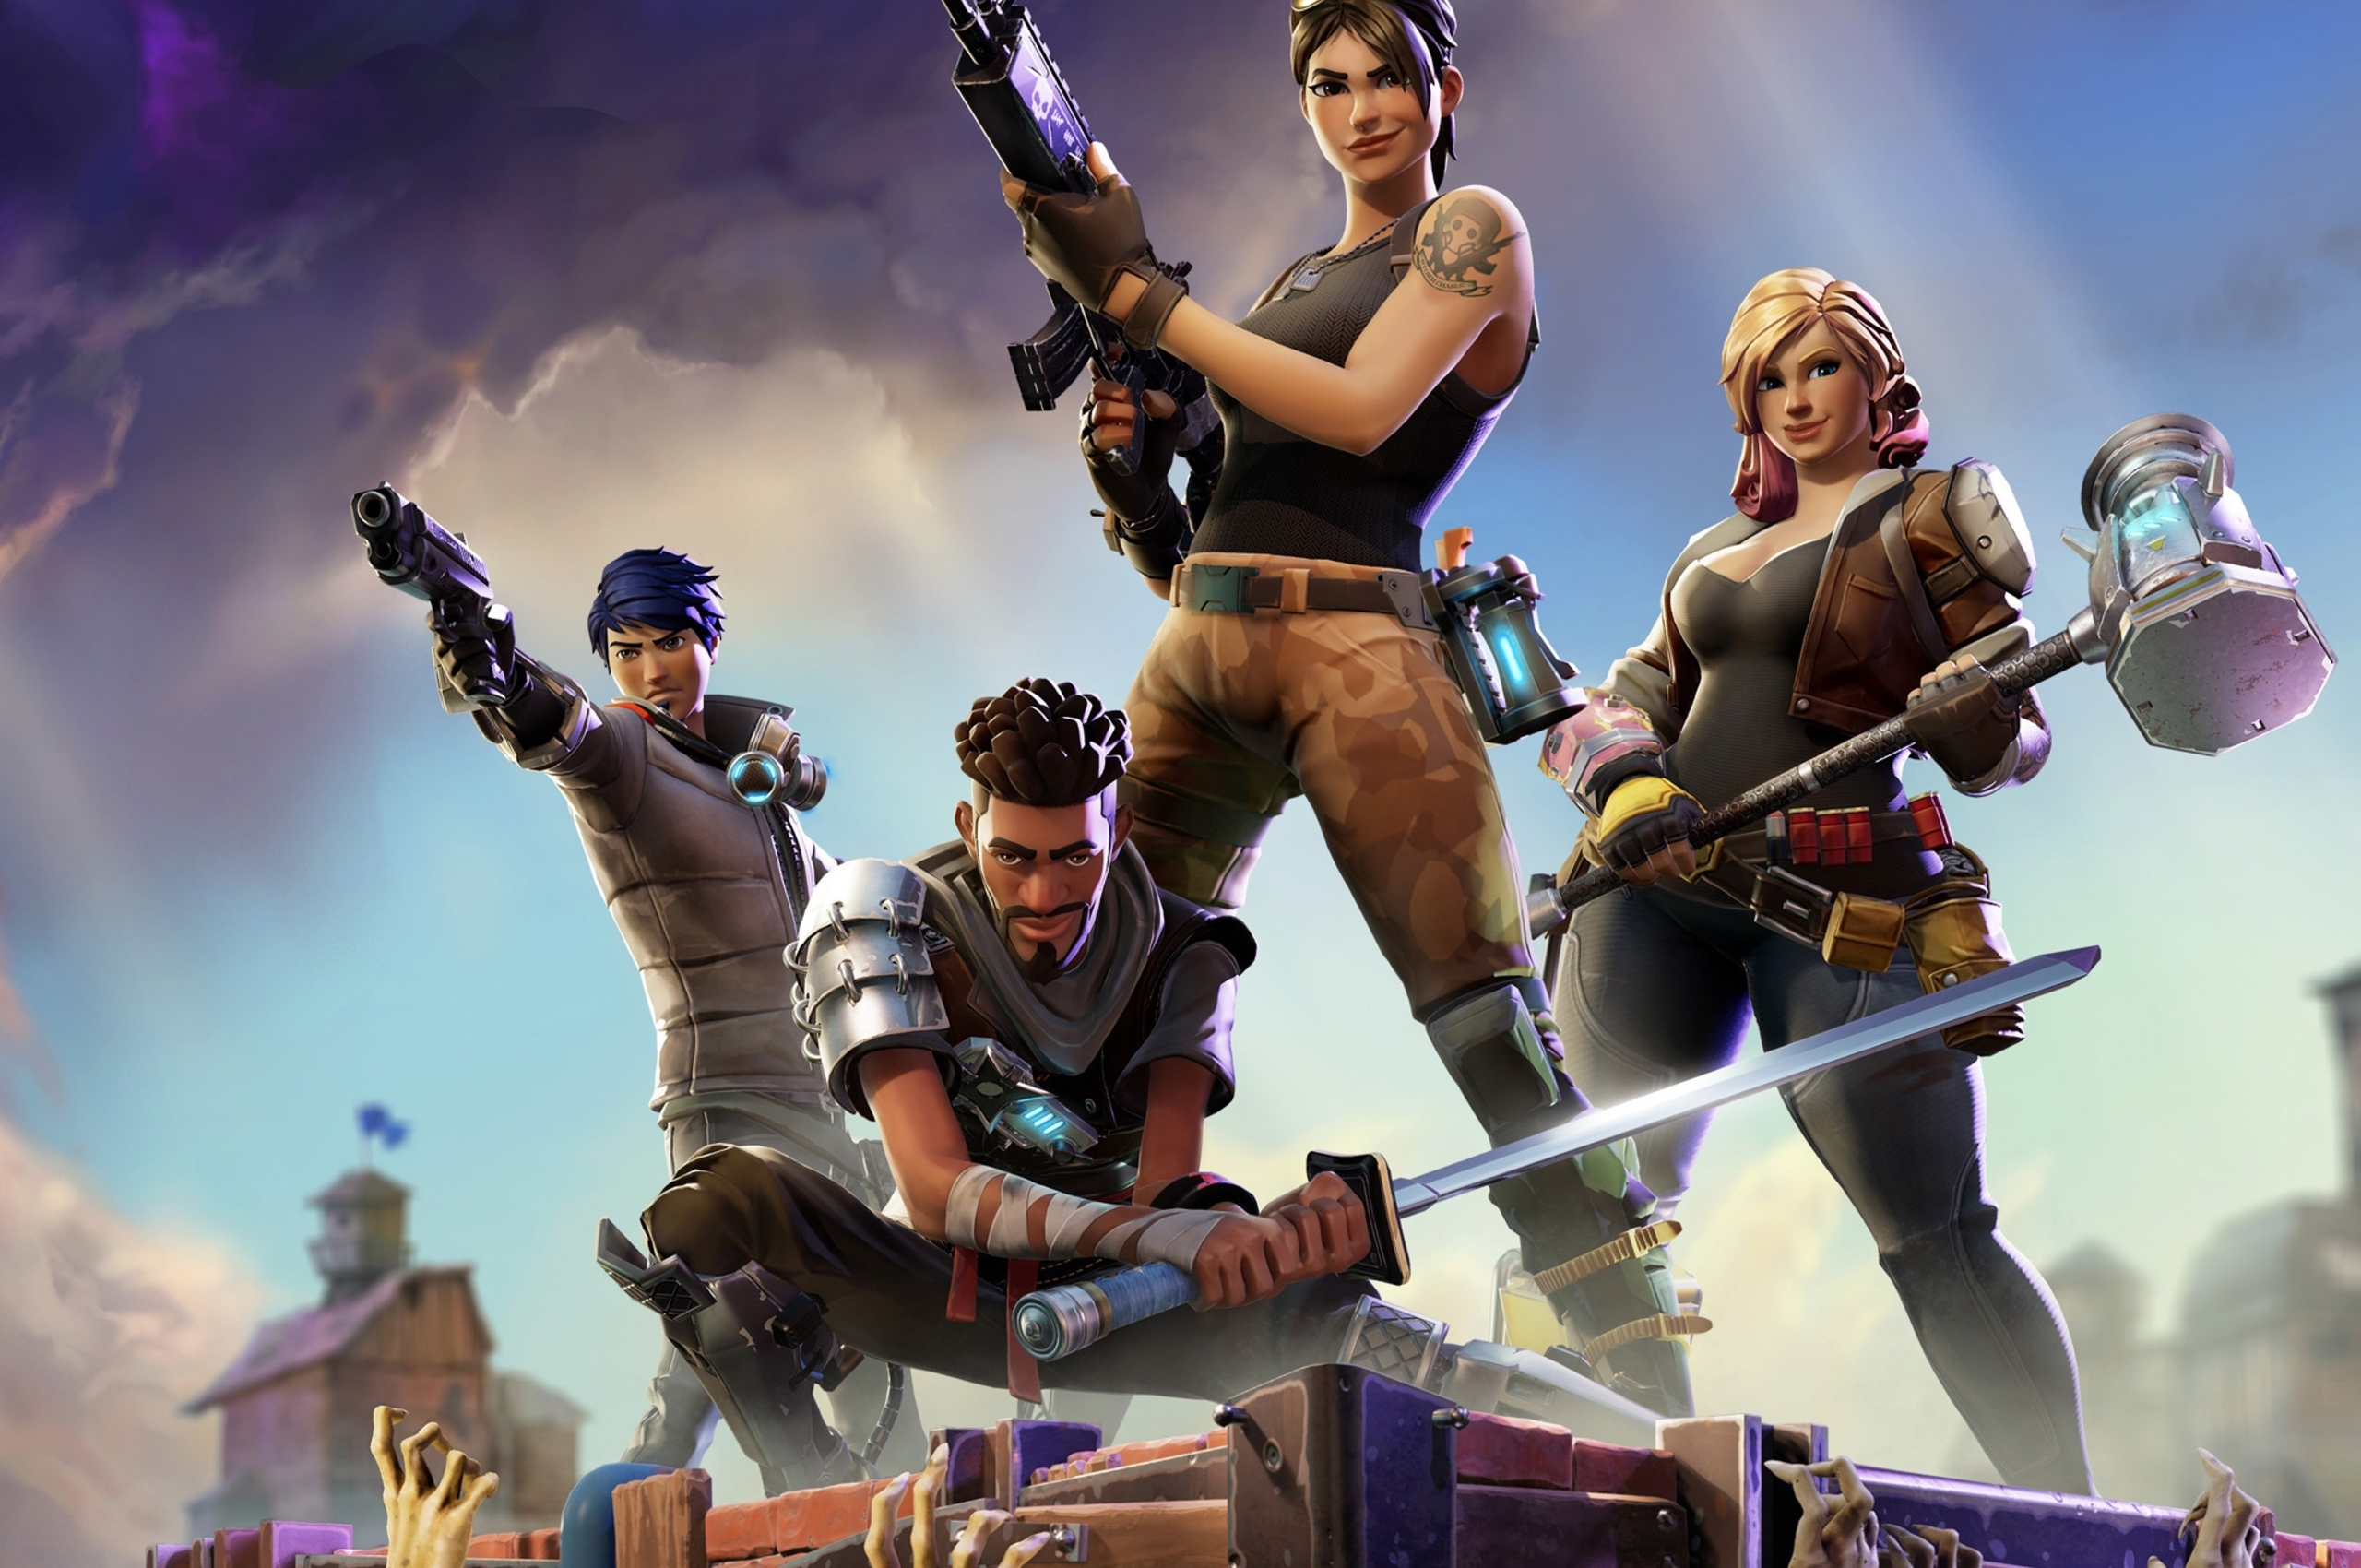 2560x1700 Fortnite Video Game Chromebook Pixel Hd 4k Wallpapers